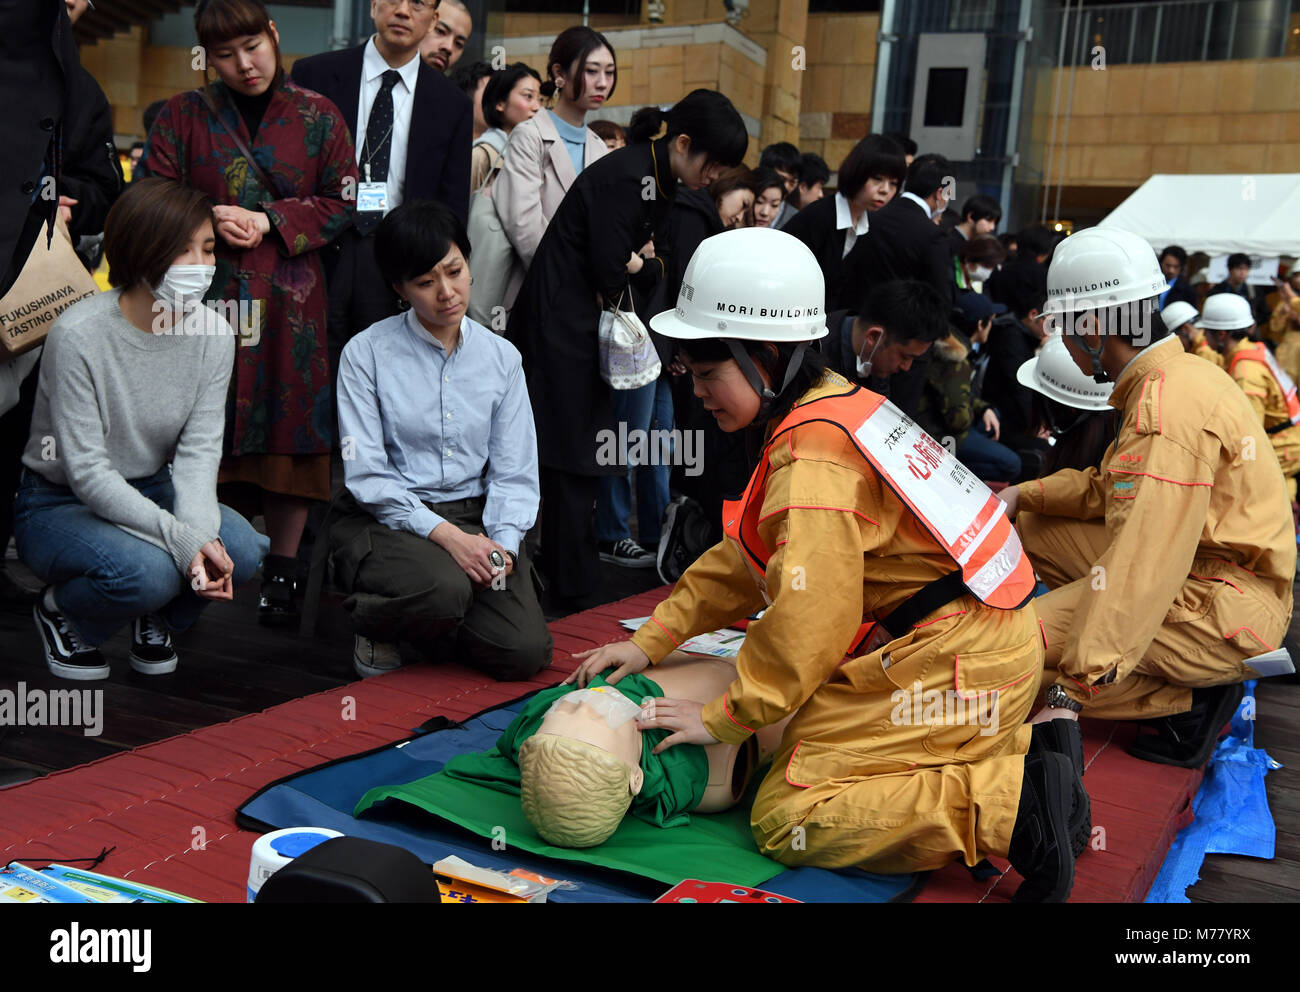 Tokyo, Japan. 9th Mar, 2018. People receive a first-aid lesson during a disaster drill in Tokyo, Japan, March 9, - Stock Image